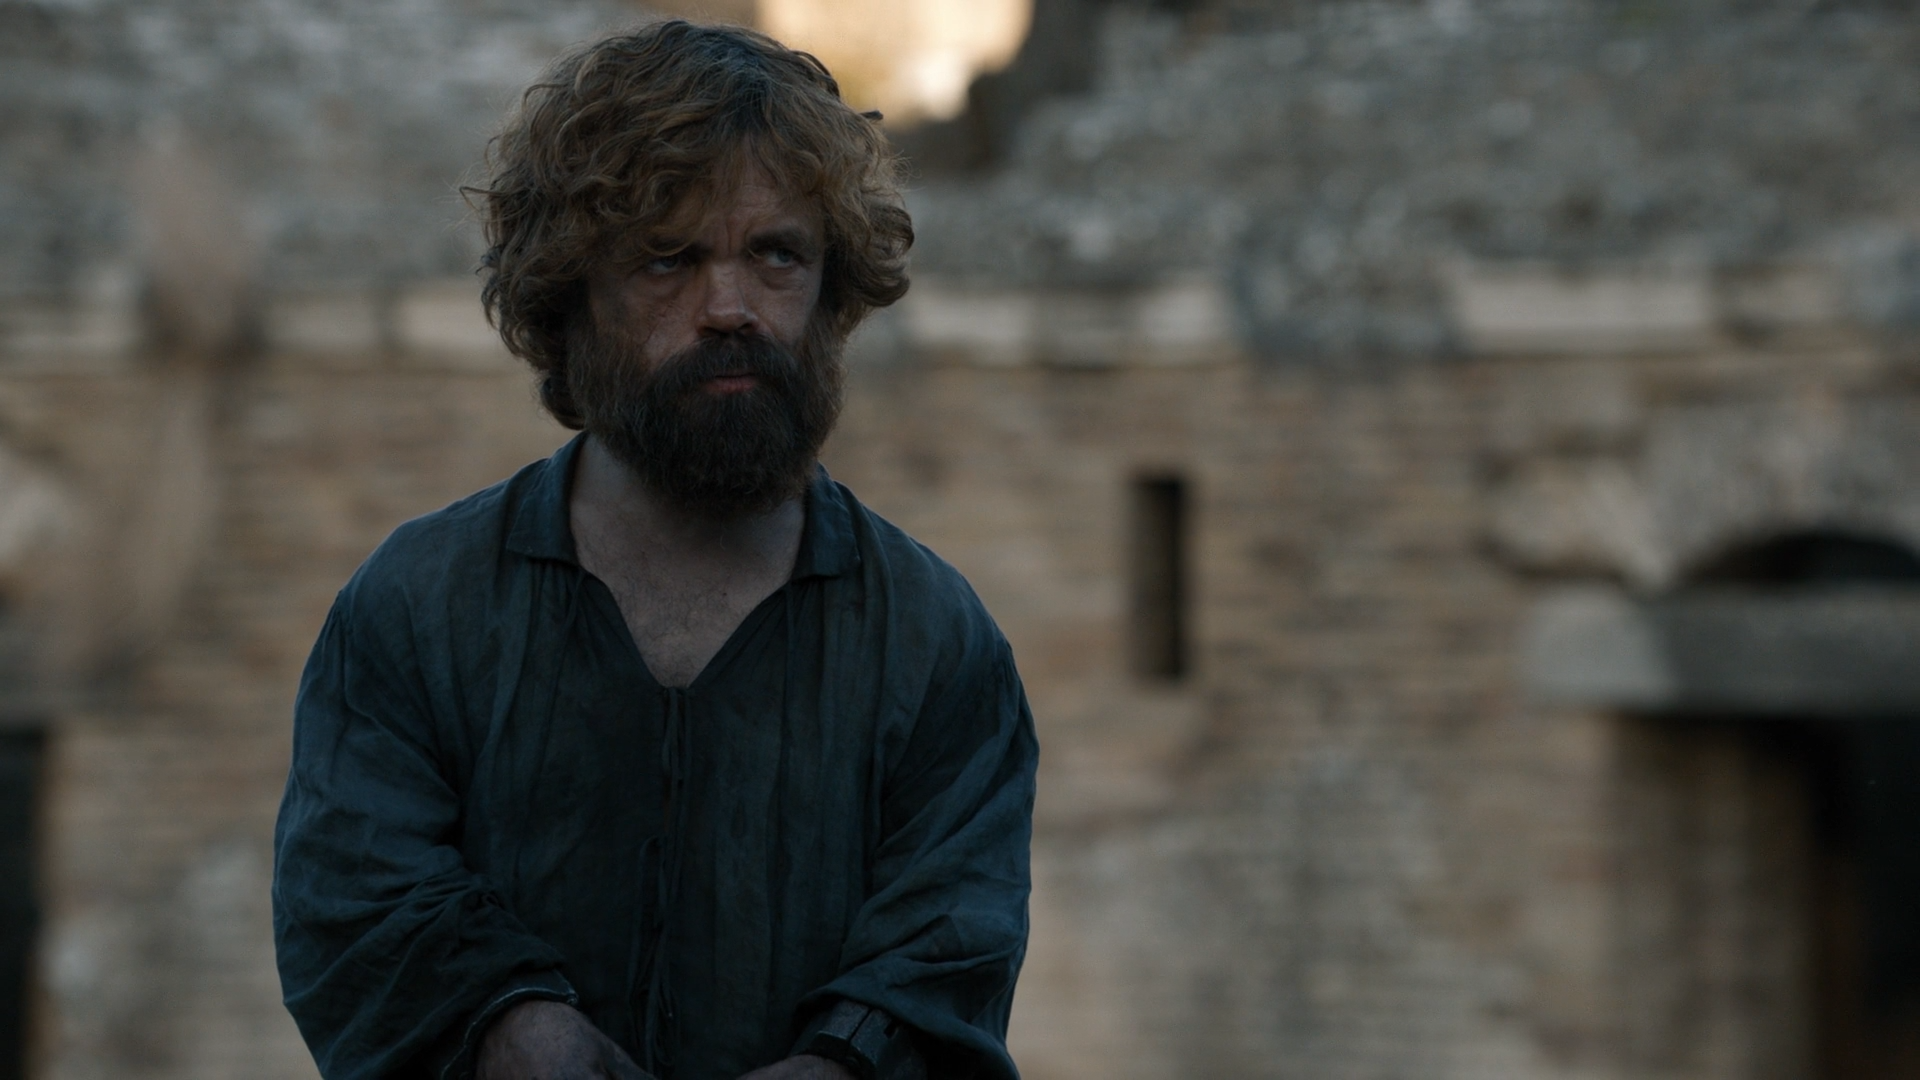 Tyrion end of Season 8 of Game of Thrones.